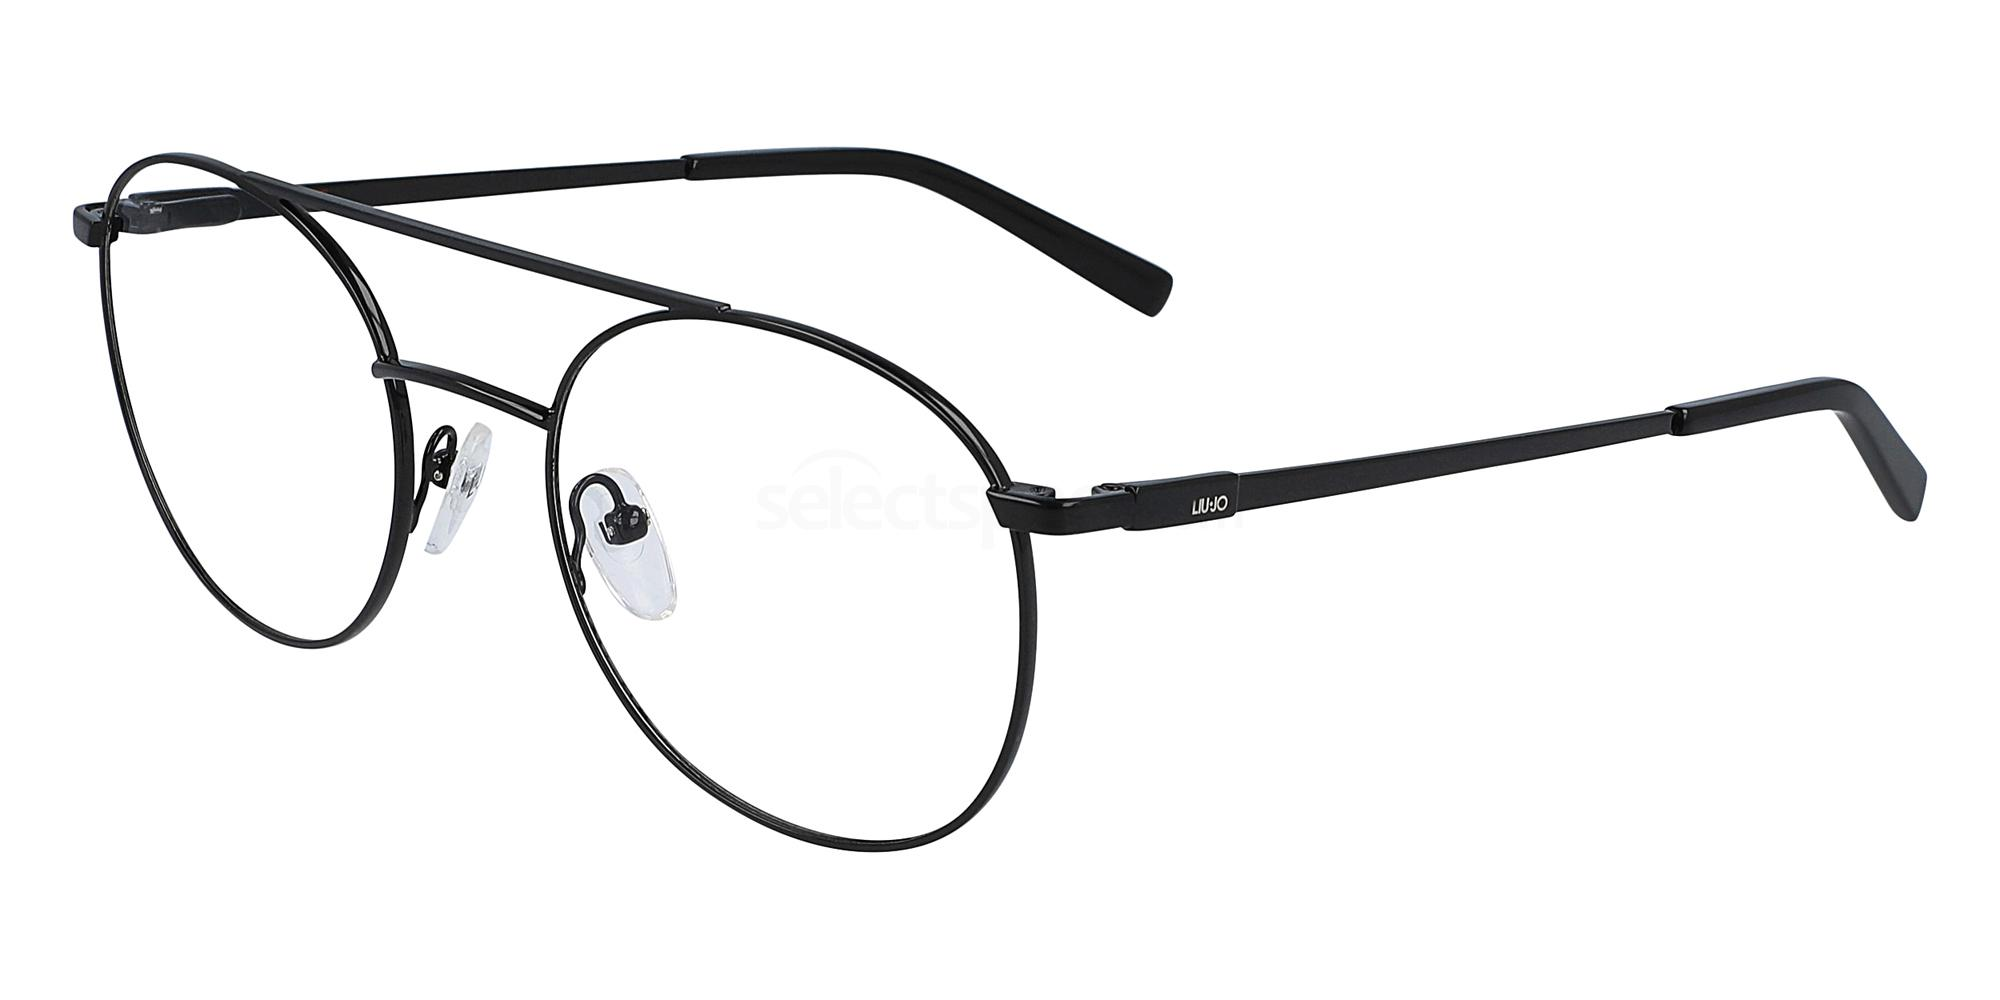 001 LJ2139 Glasses, Liu Jo